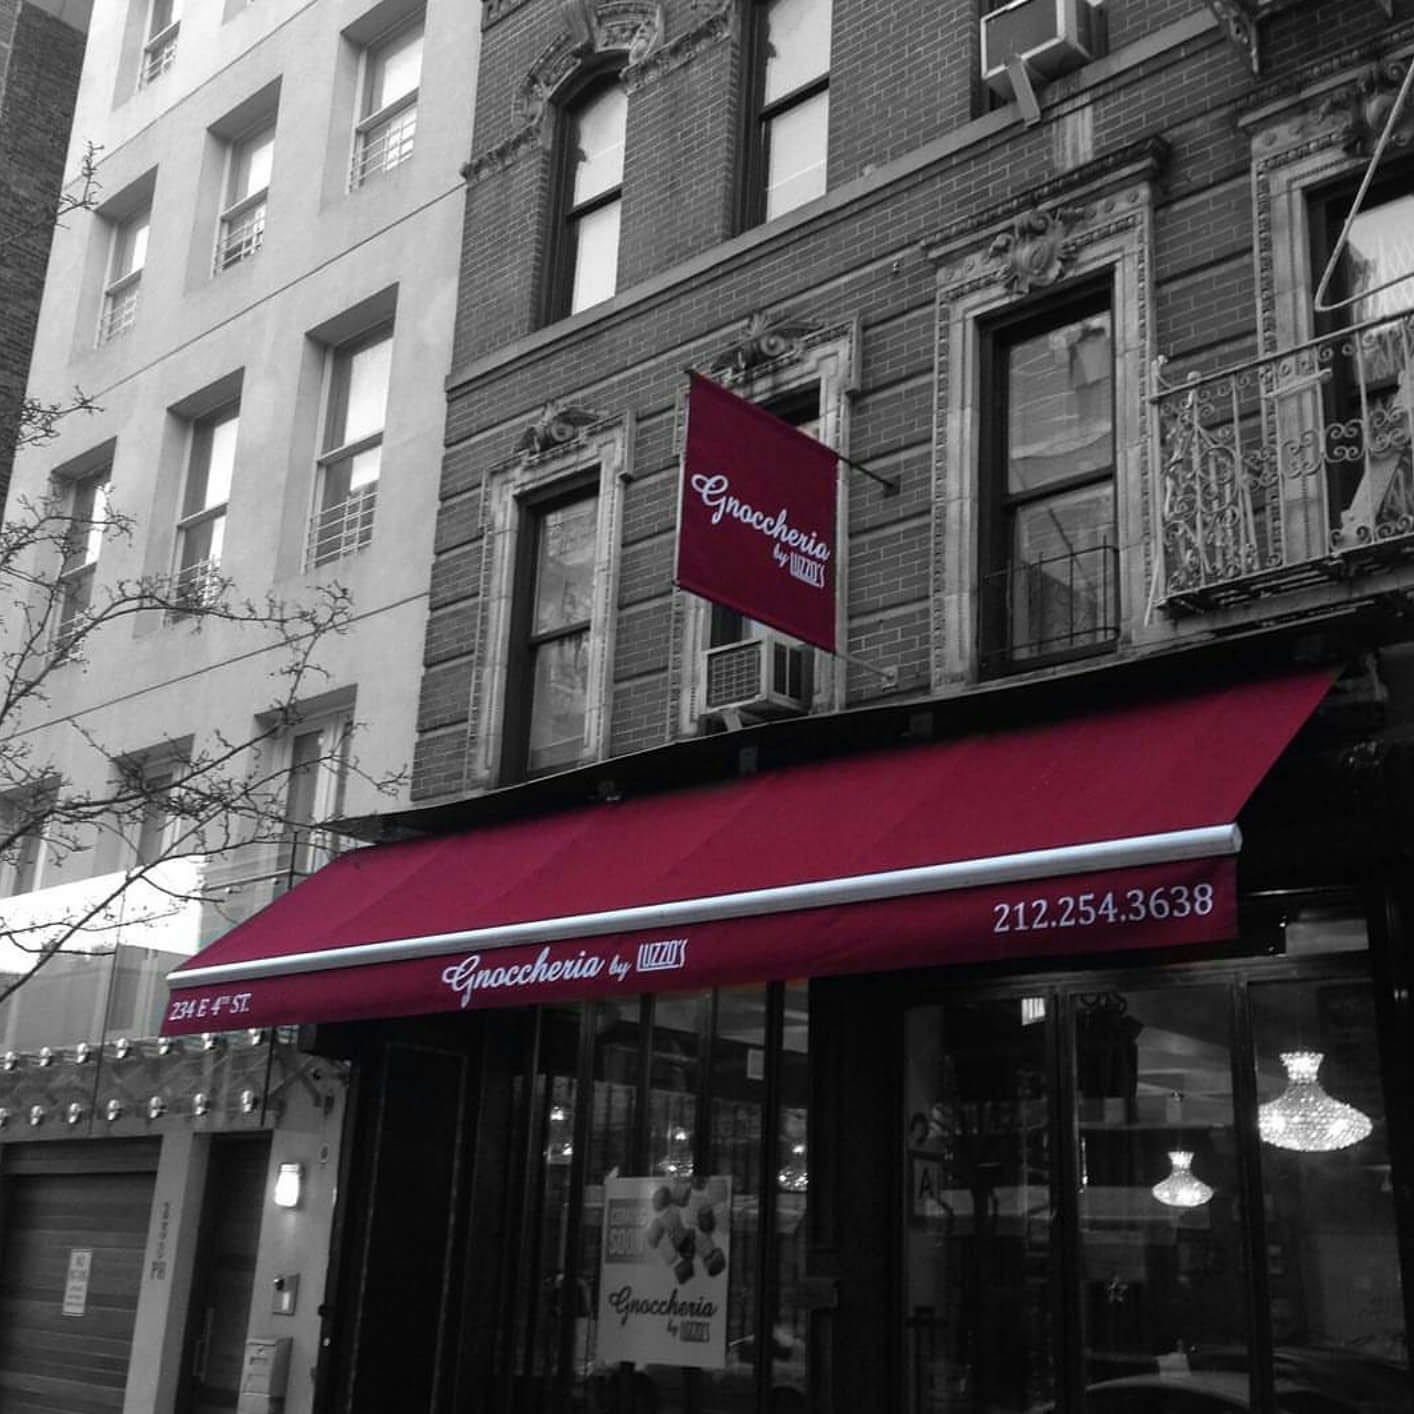 Dining Italian Restaurants In NYC Gnoccheria by Luzzos